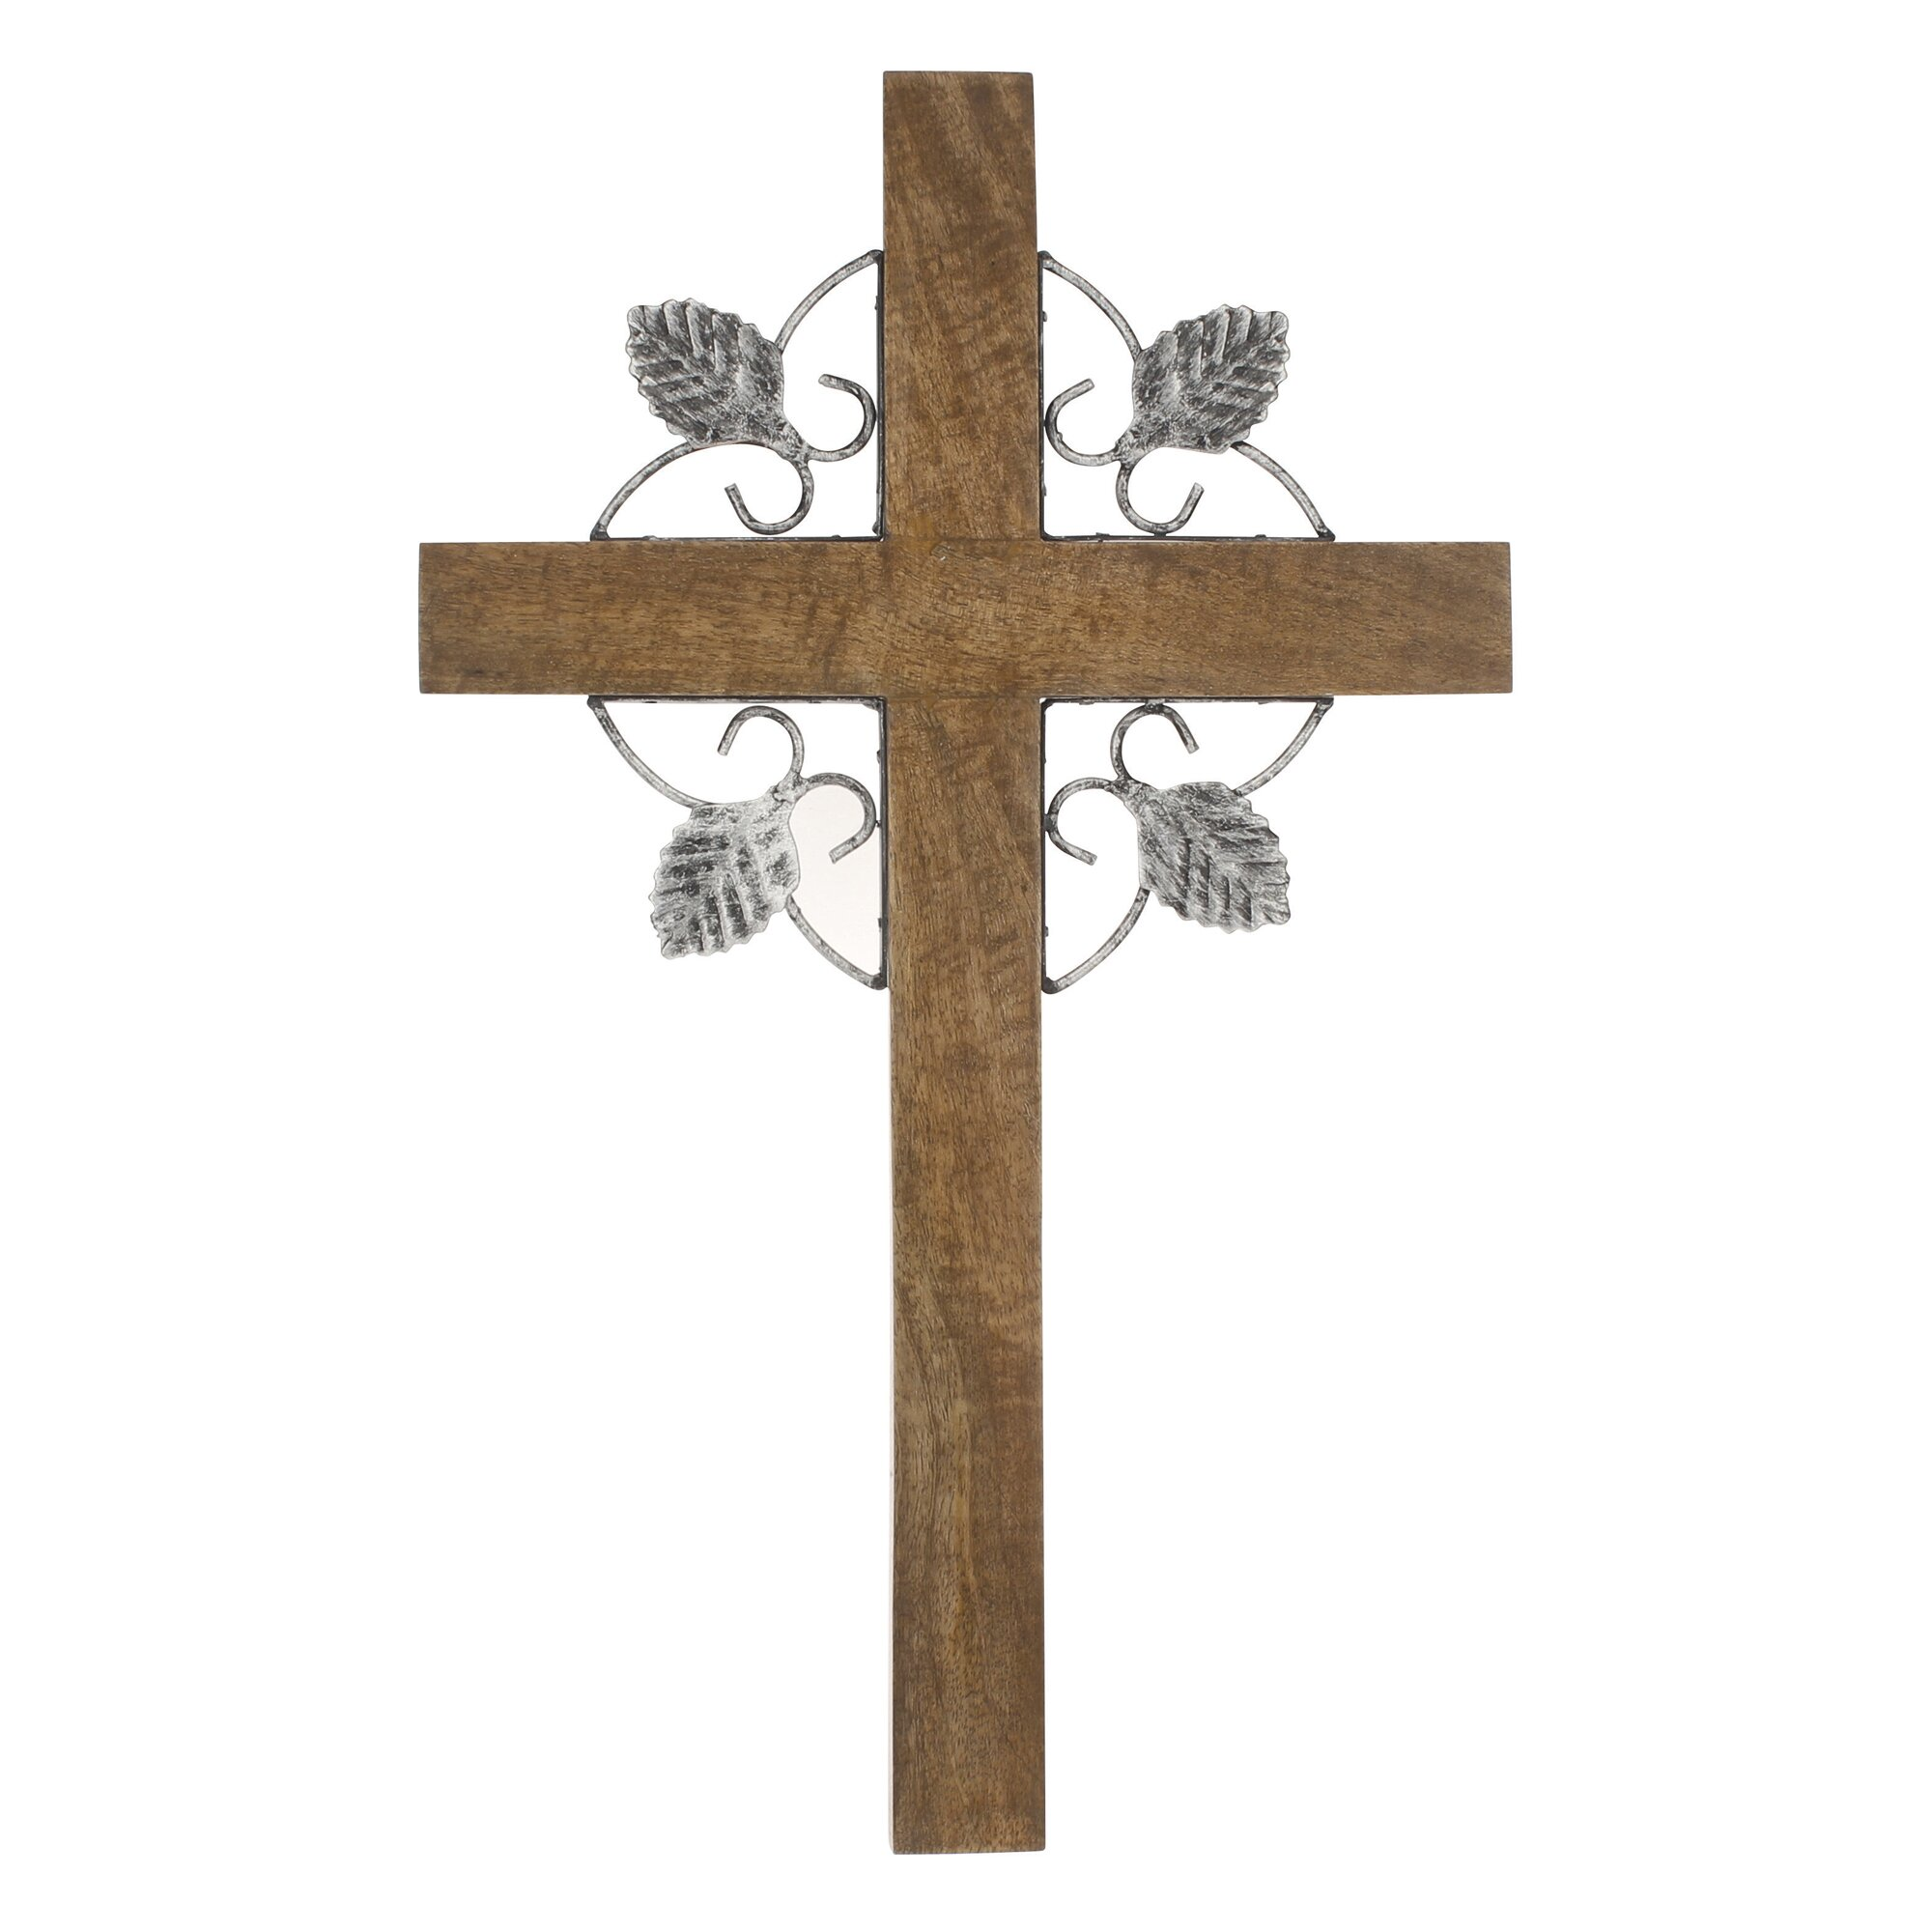 Ckk home d cor lp stonebriar cross wall decor reviews wayfair Home decor wall crosses